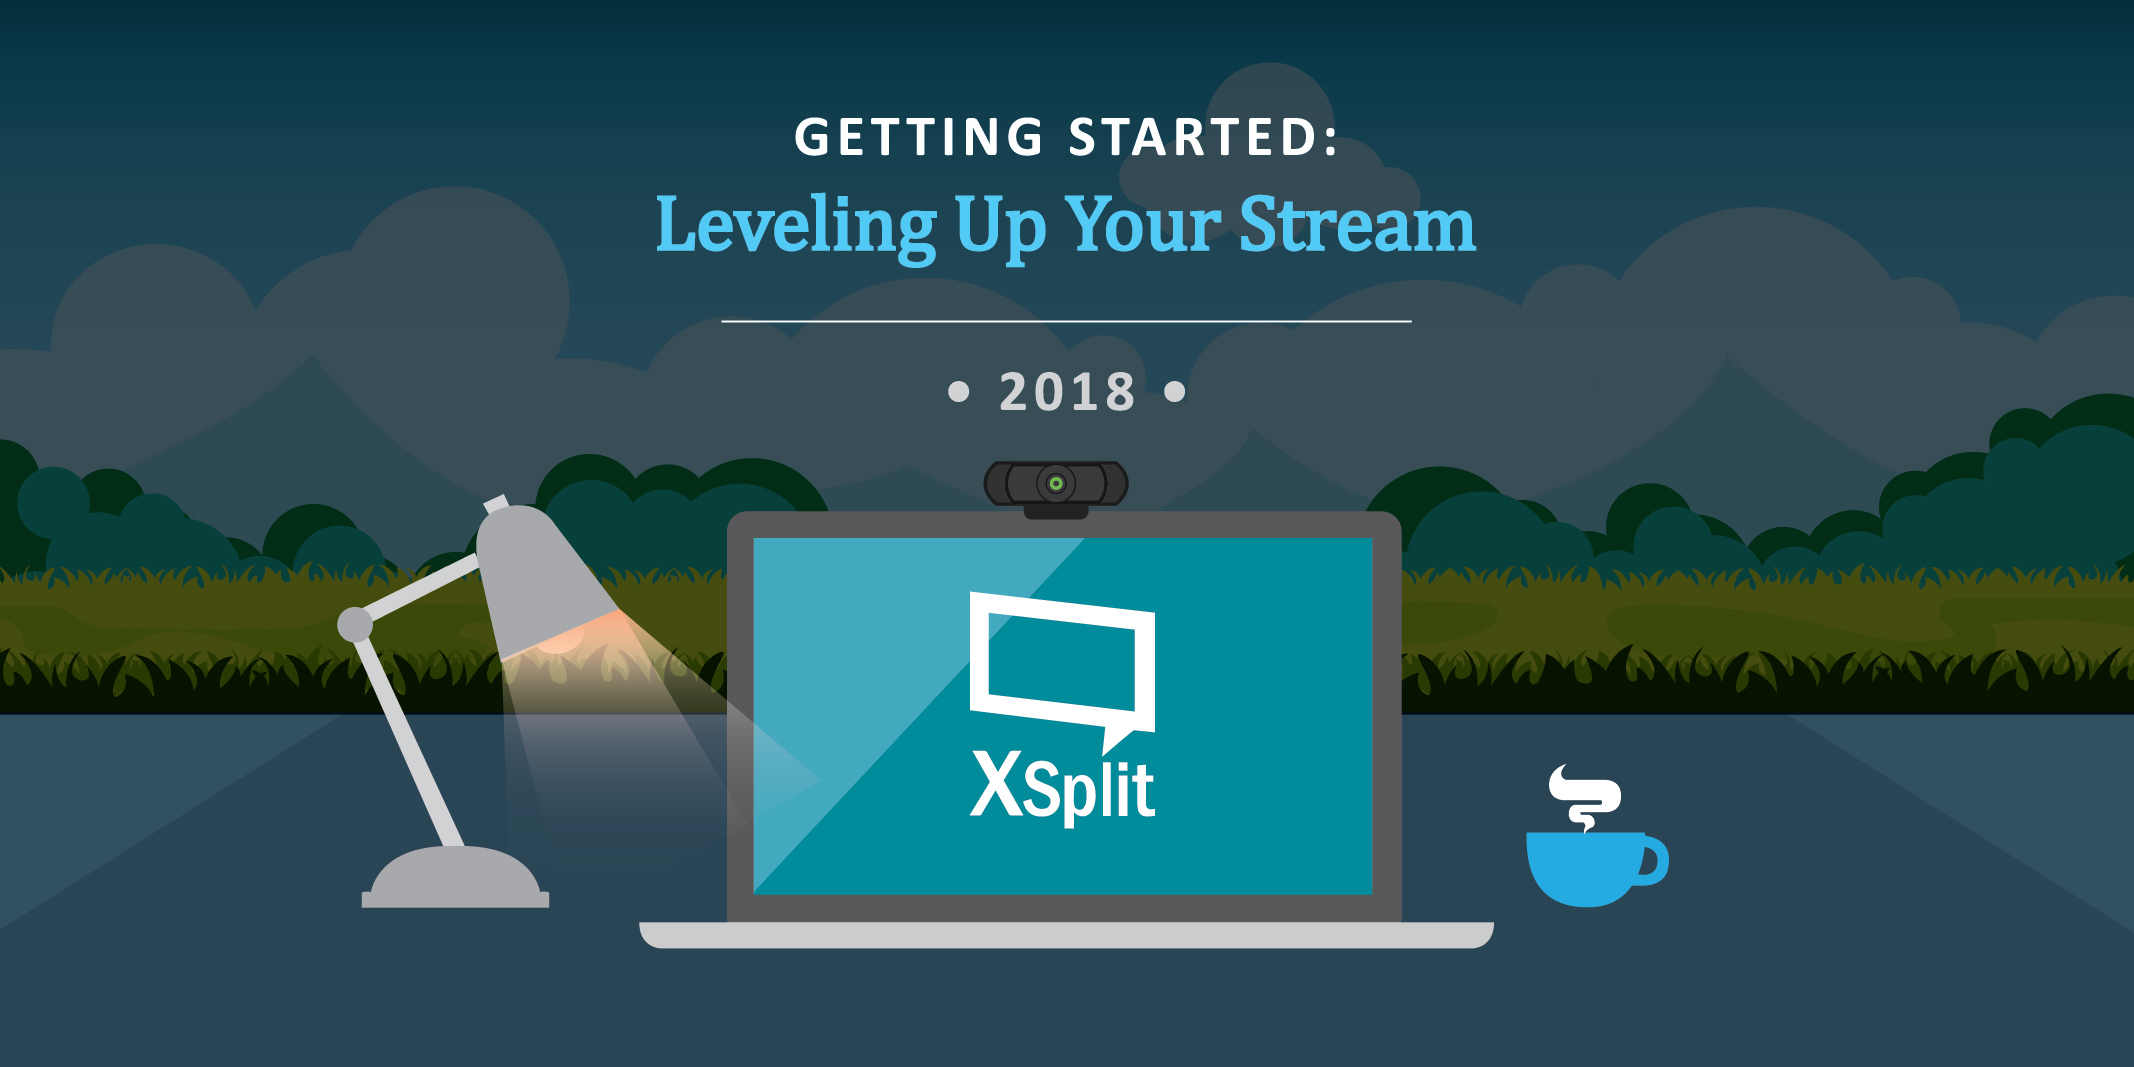 Leveling Up your Stream